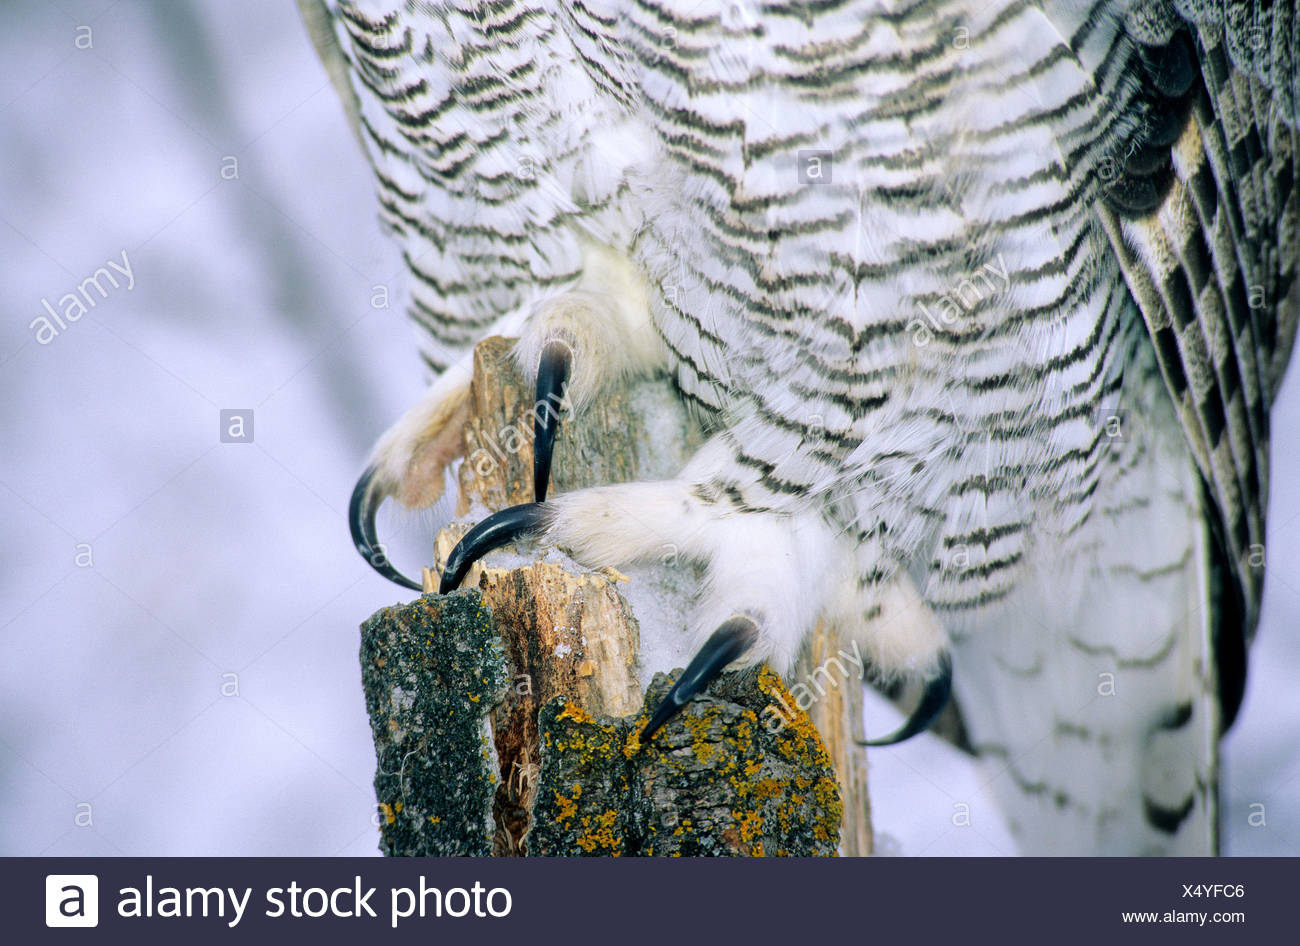 Talons on the feet of an adult great horned owl (Bubo virginianus), Alberta, Canada - Stock Image